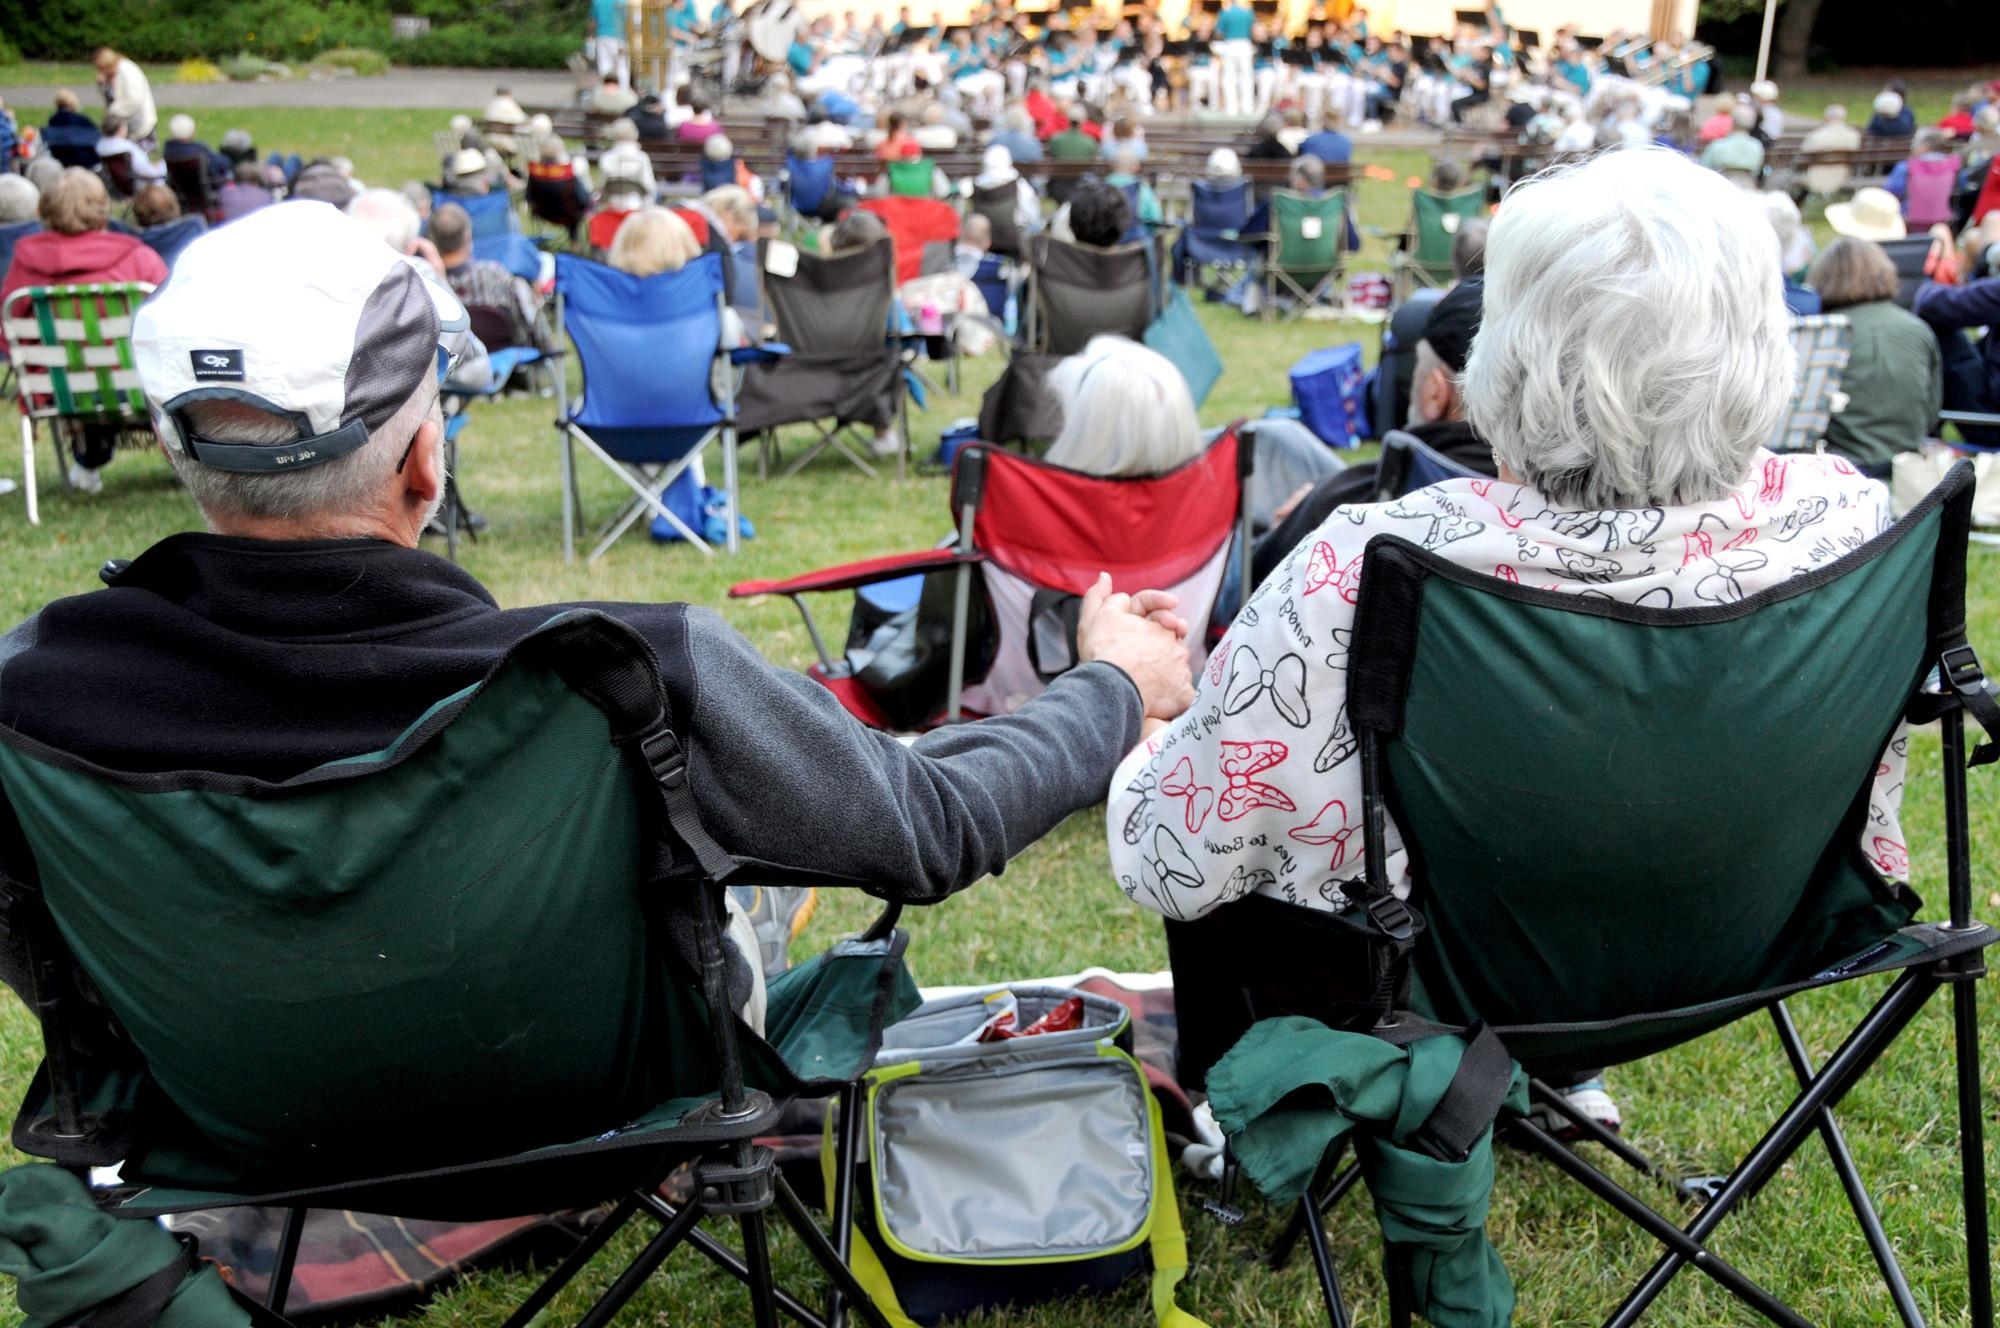 Music lovers Tom and Patti Jacobson of Ashland have been attending concerts in the park for years. (Photo by Jim Flint)